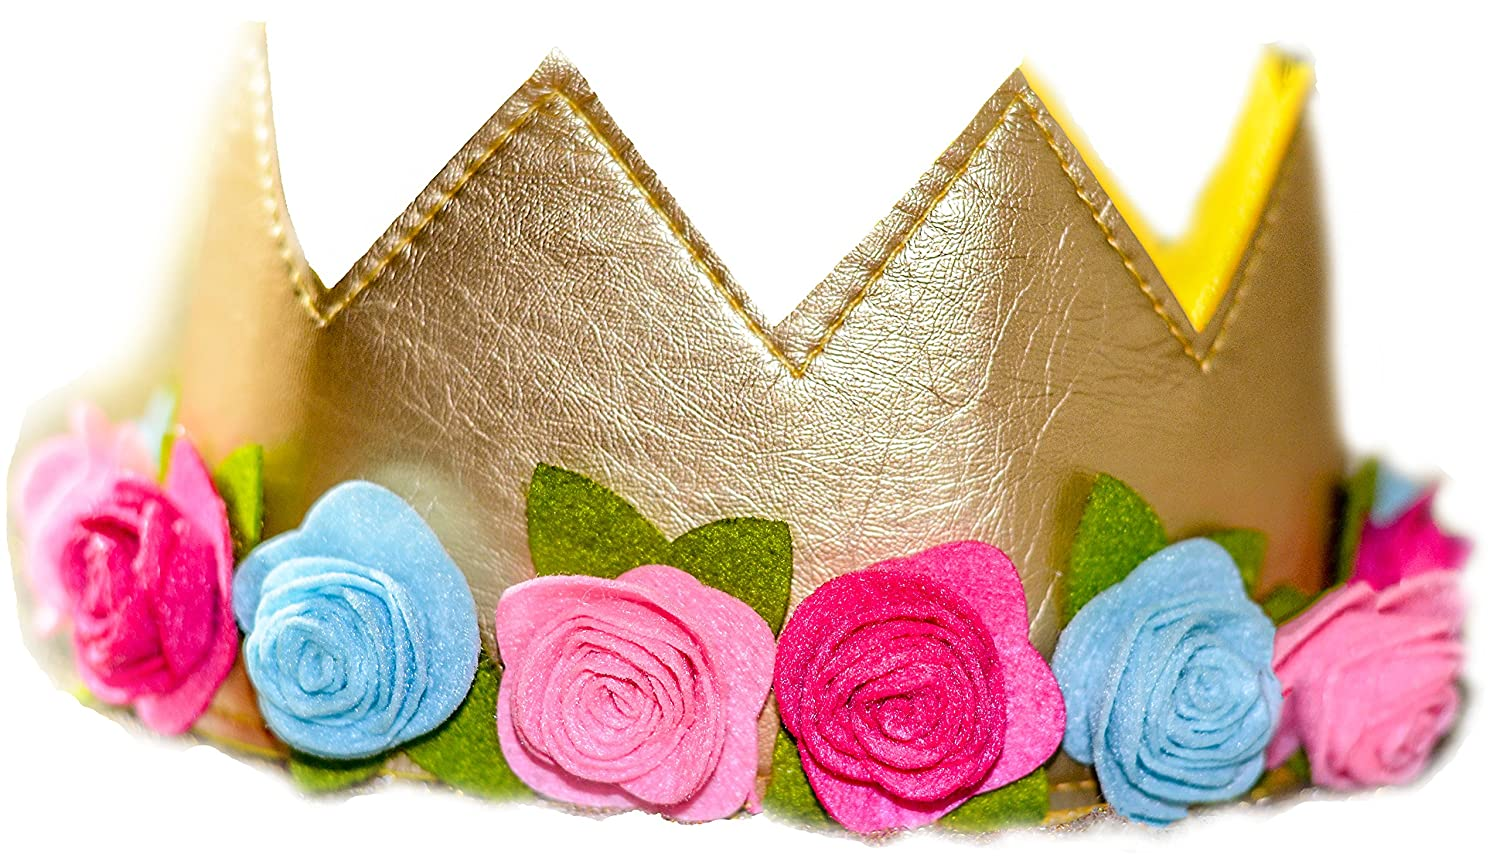 Girls Birthday Flower Crown Felt Gold Pink Princess Faux Leather Stretch Simply Gorgeous Pretend Play Third-OS-FlowerCrownOrig